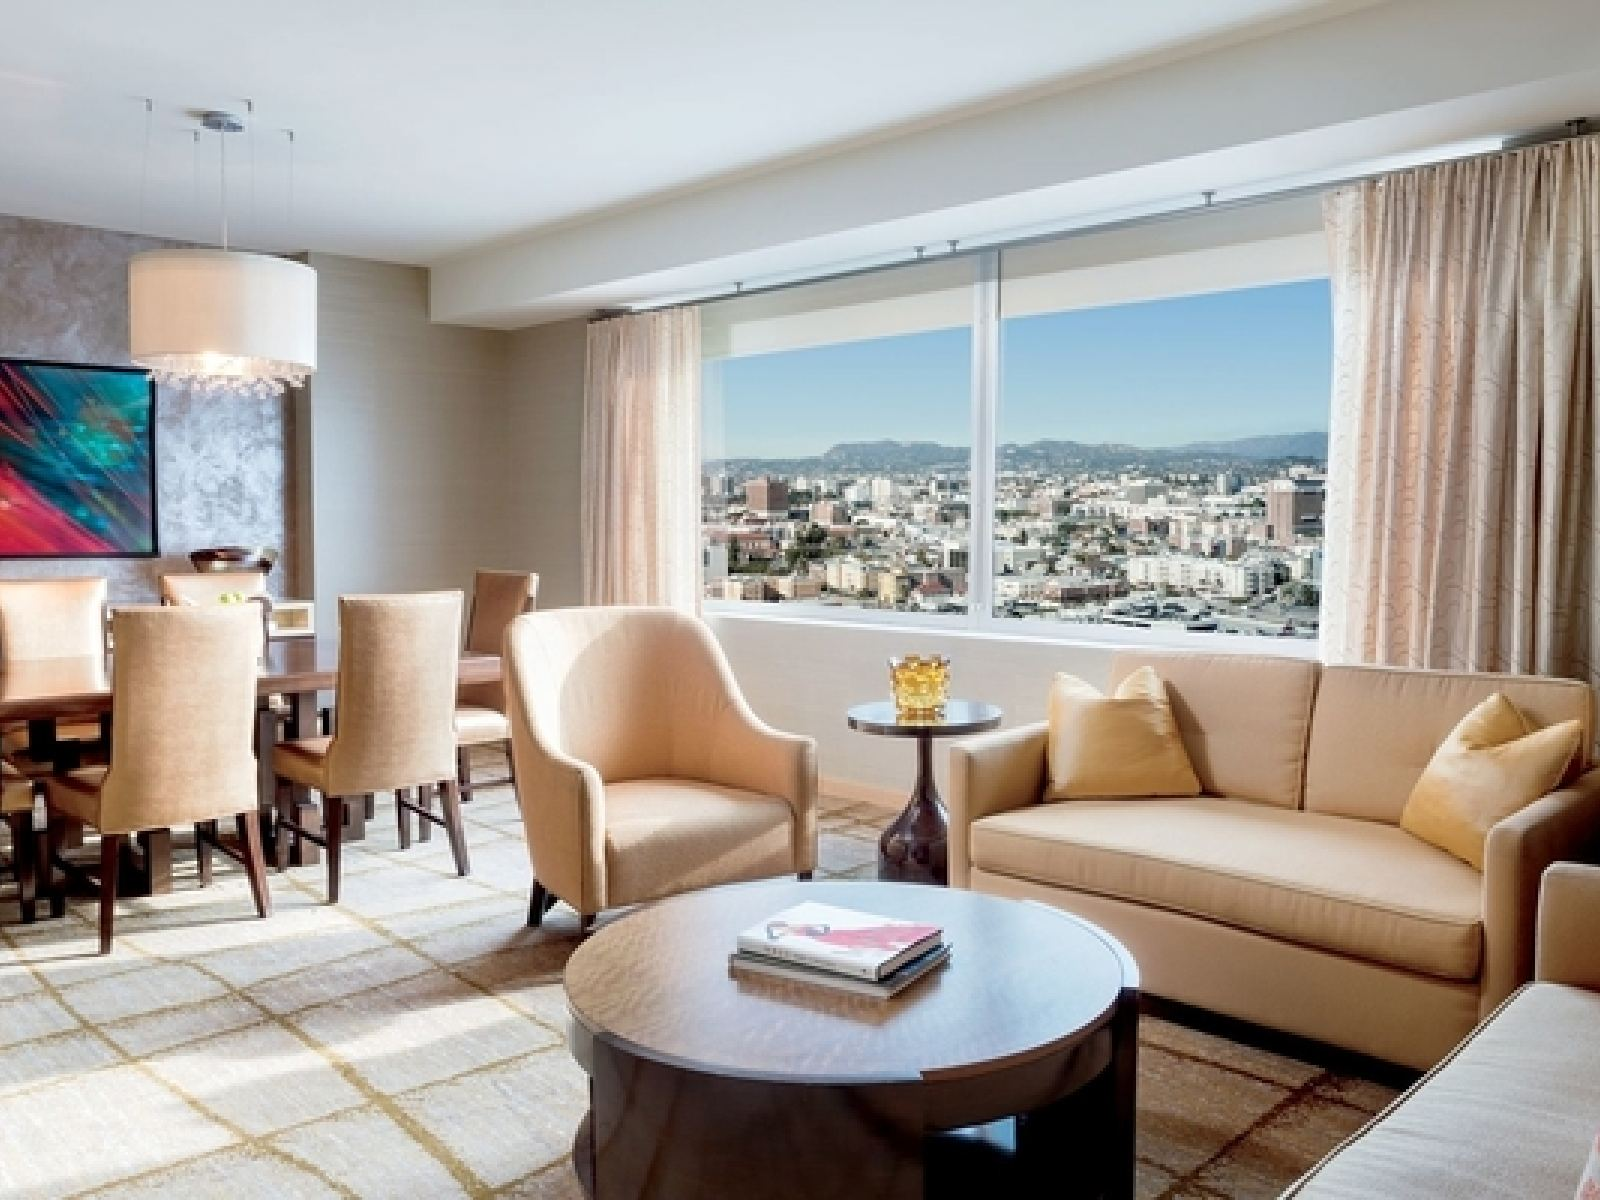 Main image for article titled Directo a la Cima en The Ritz-Carlton, Los Angeles